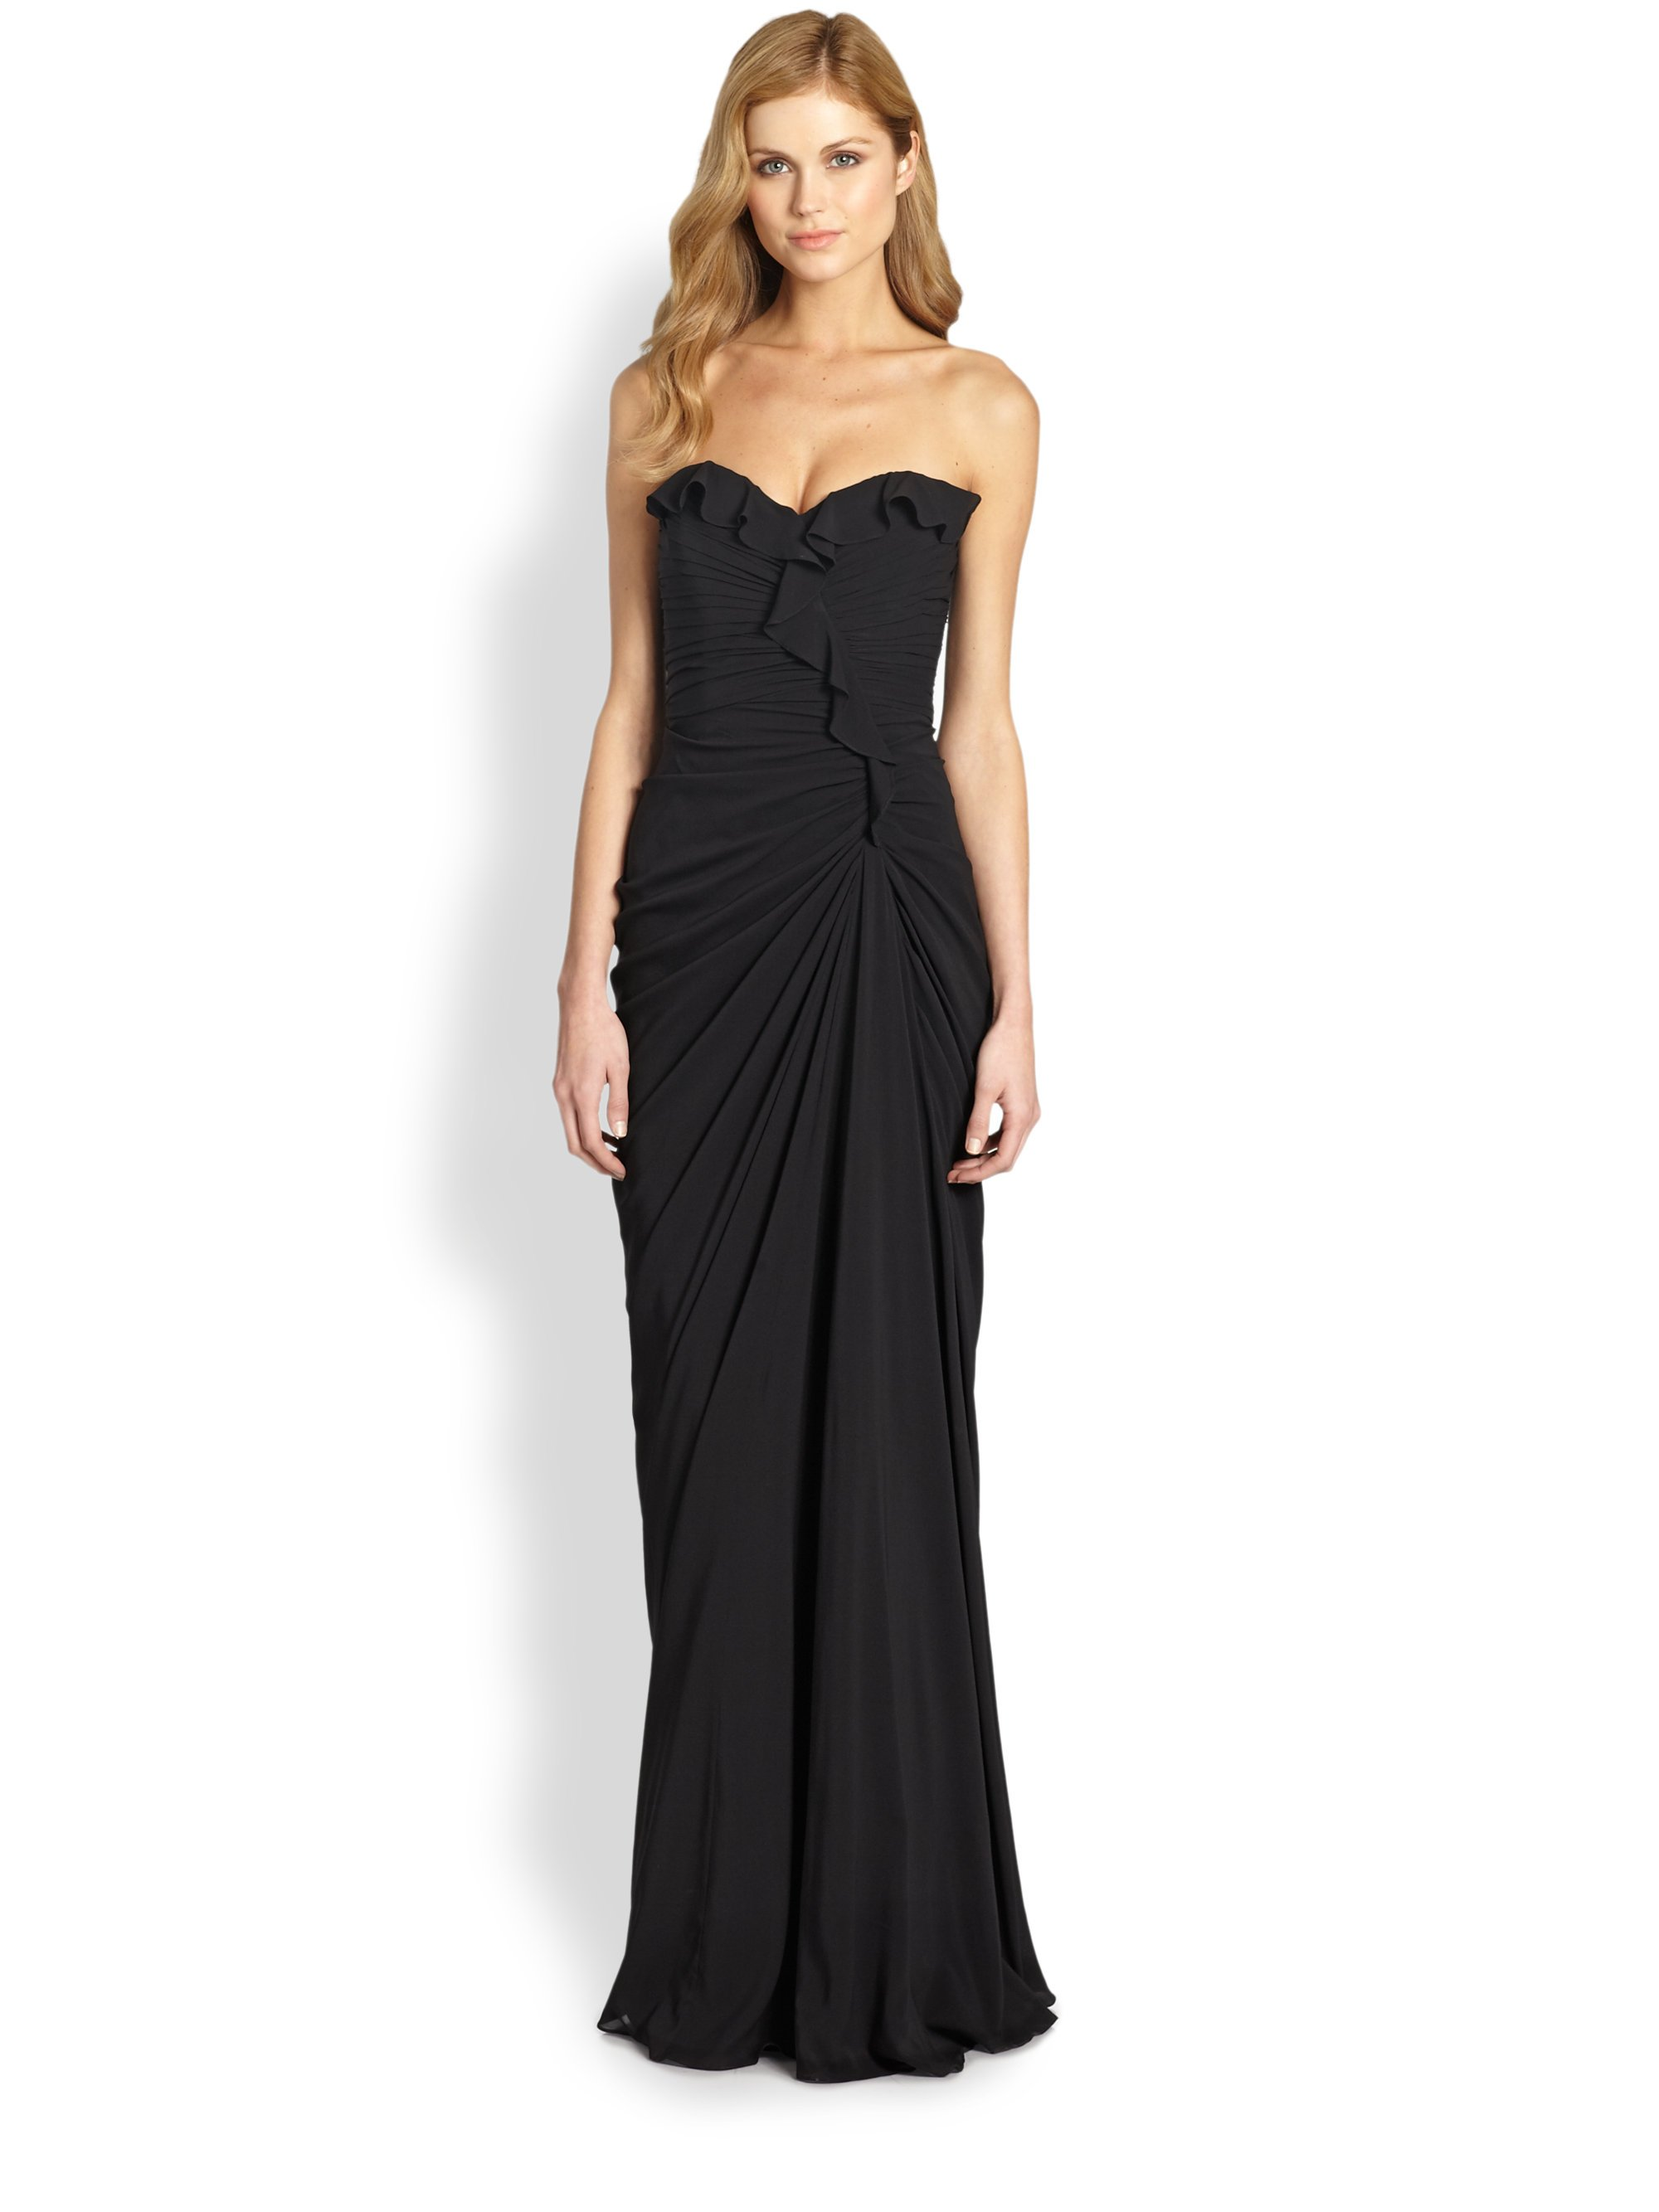 Images of Black Sweetheart Strapless Dress - Best easter gift ever